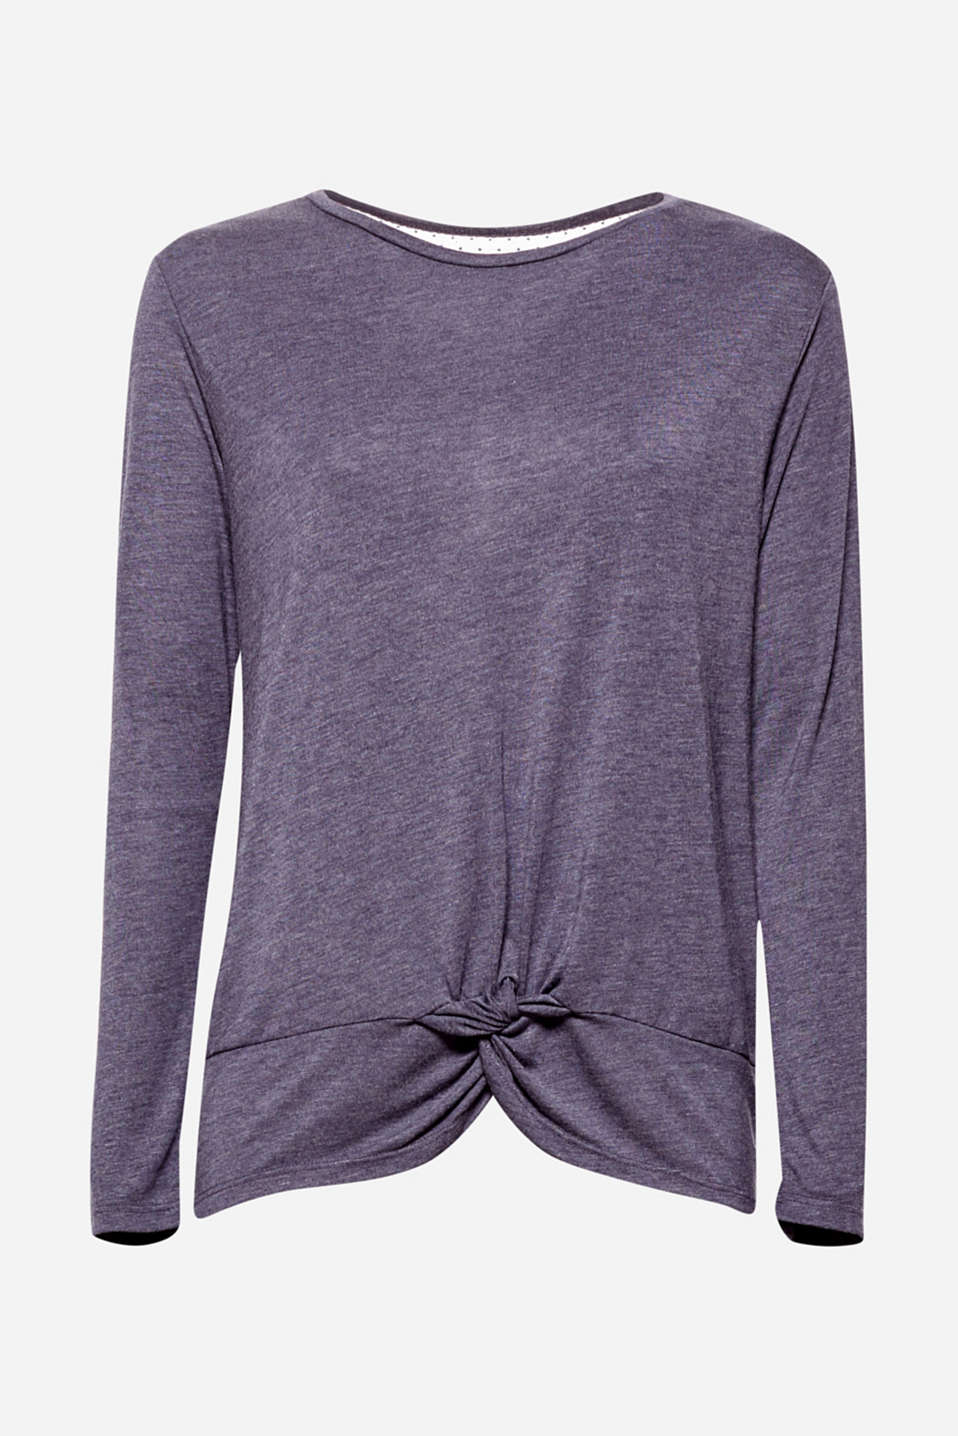 We love it easy: like this super soft long sleeve top in a straight, wide fit with casual knotting details at the hem!